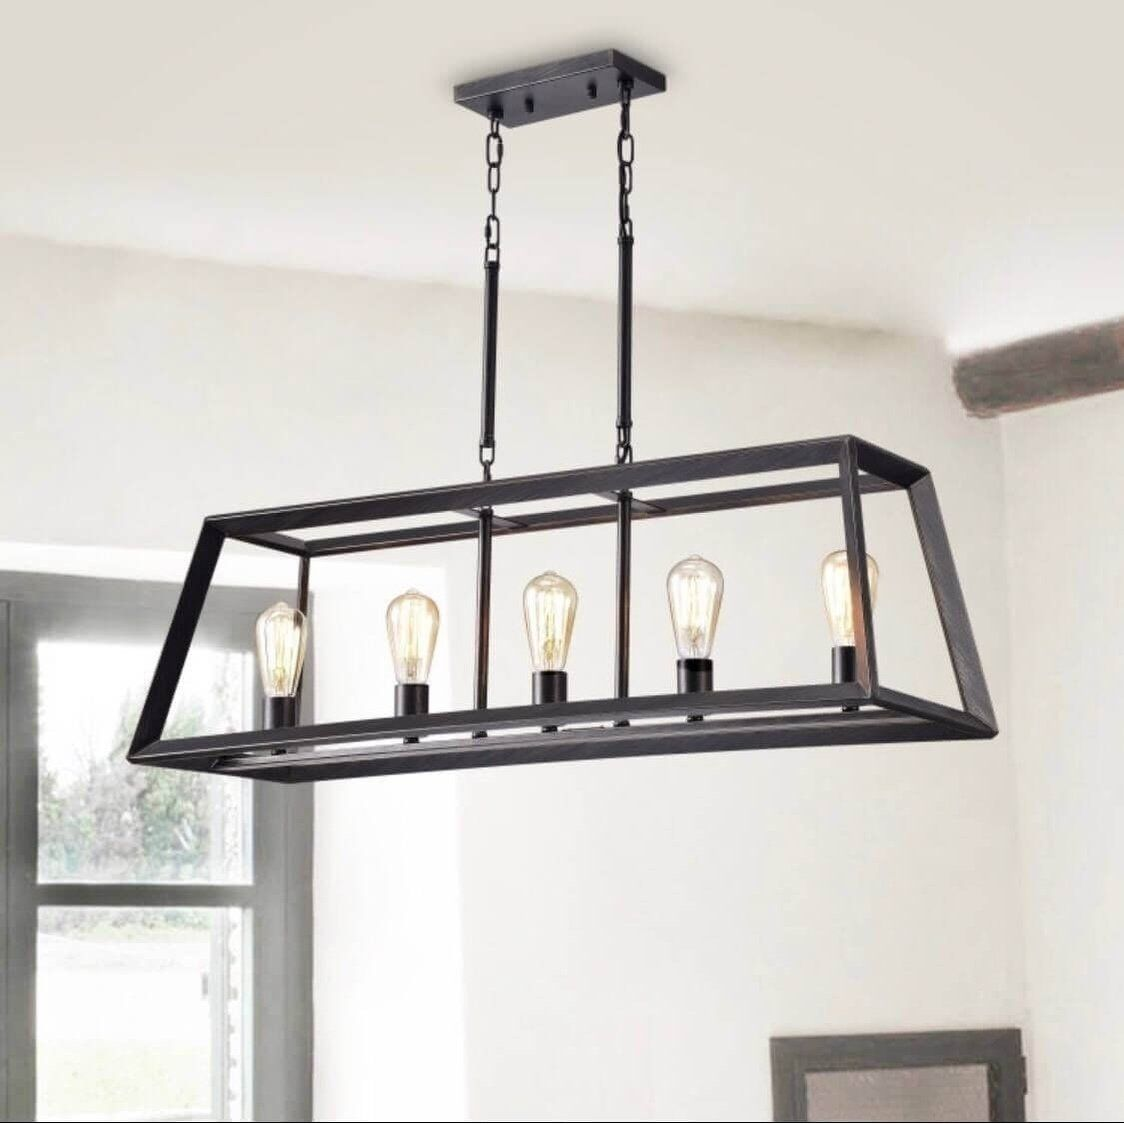 Ceiling Lights Kitchen Island Lighting Wrought Iron Accents Metal Chandelier